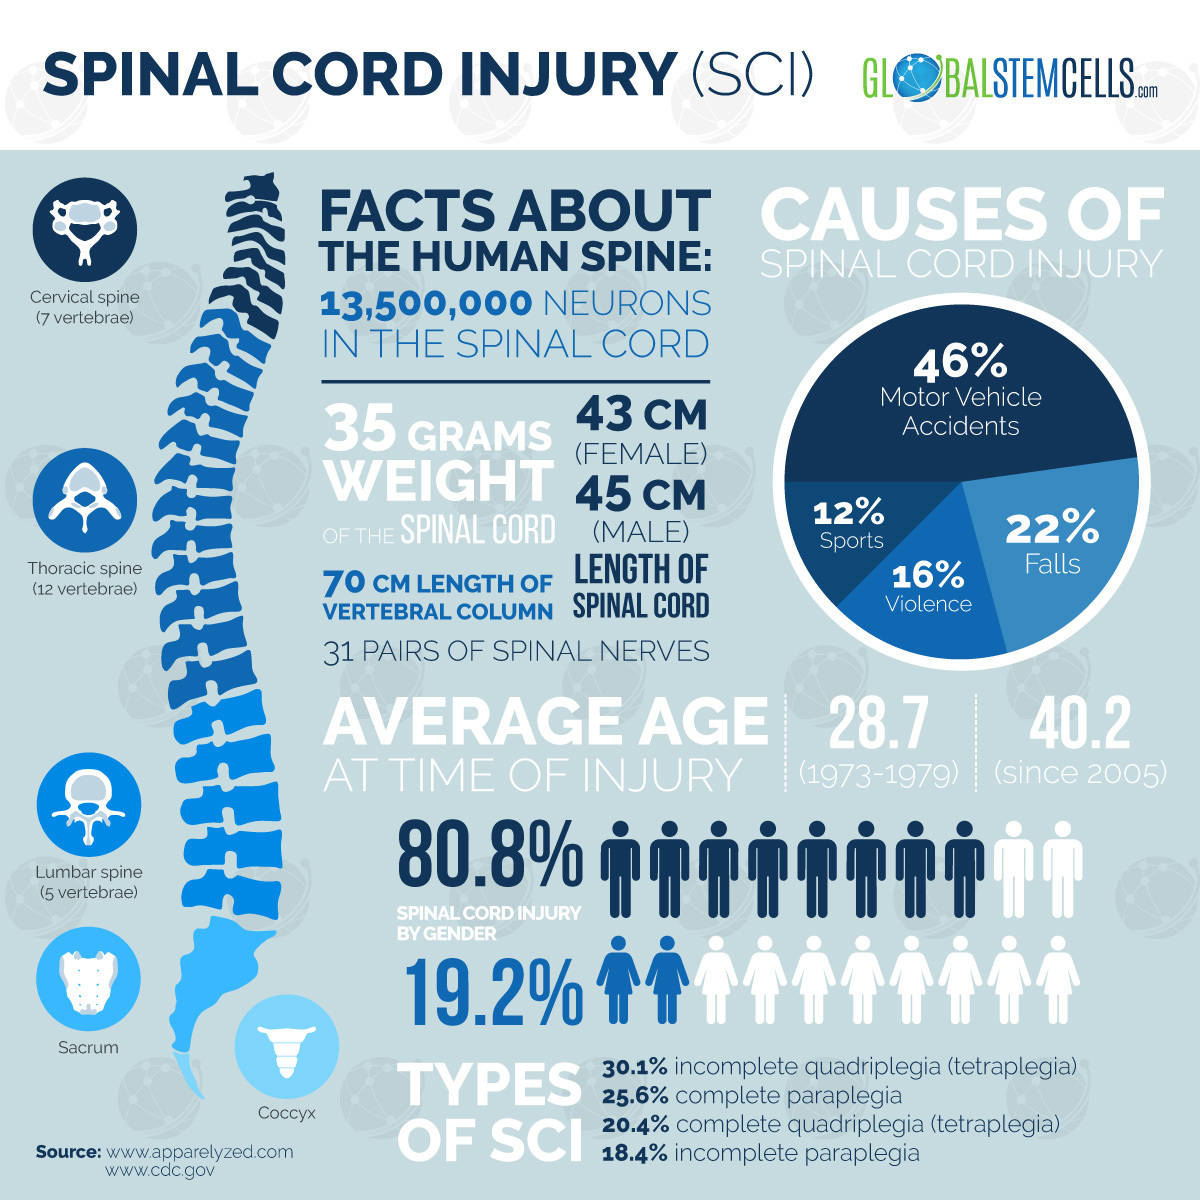 Spinal Cord Injury - Fact Sheet | Global Stem Cells